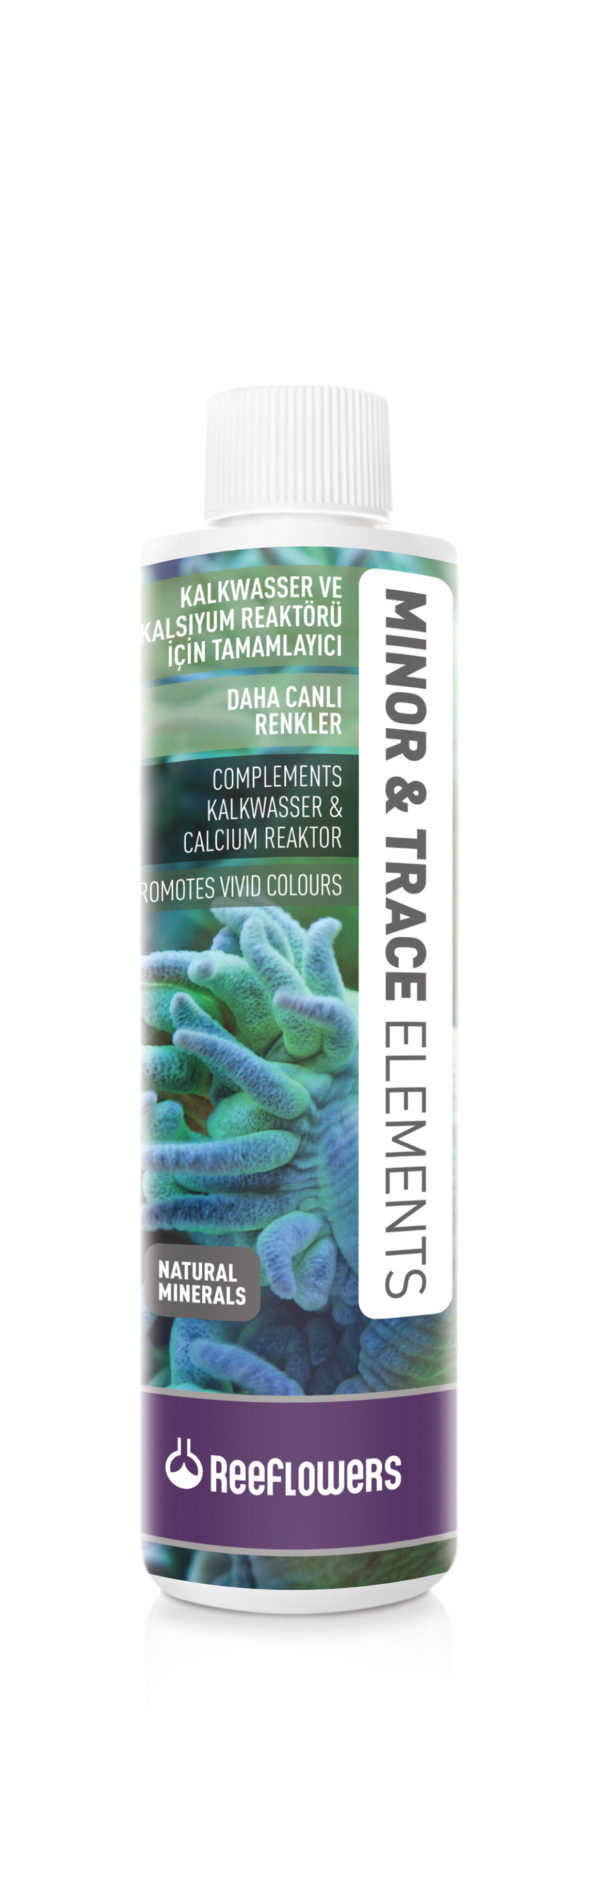 Minor & Trace Elements 250ml